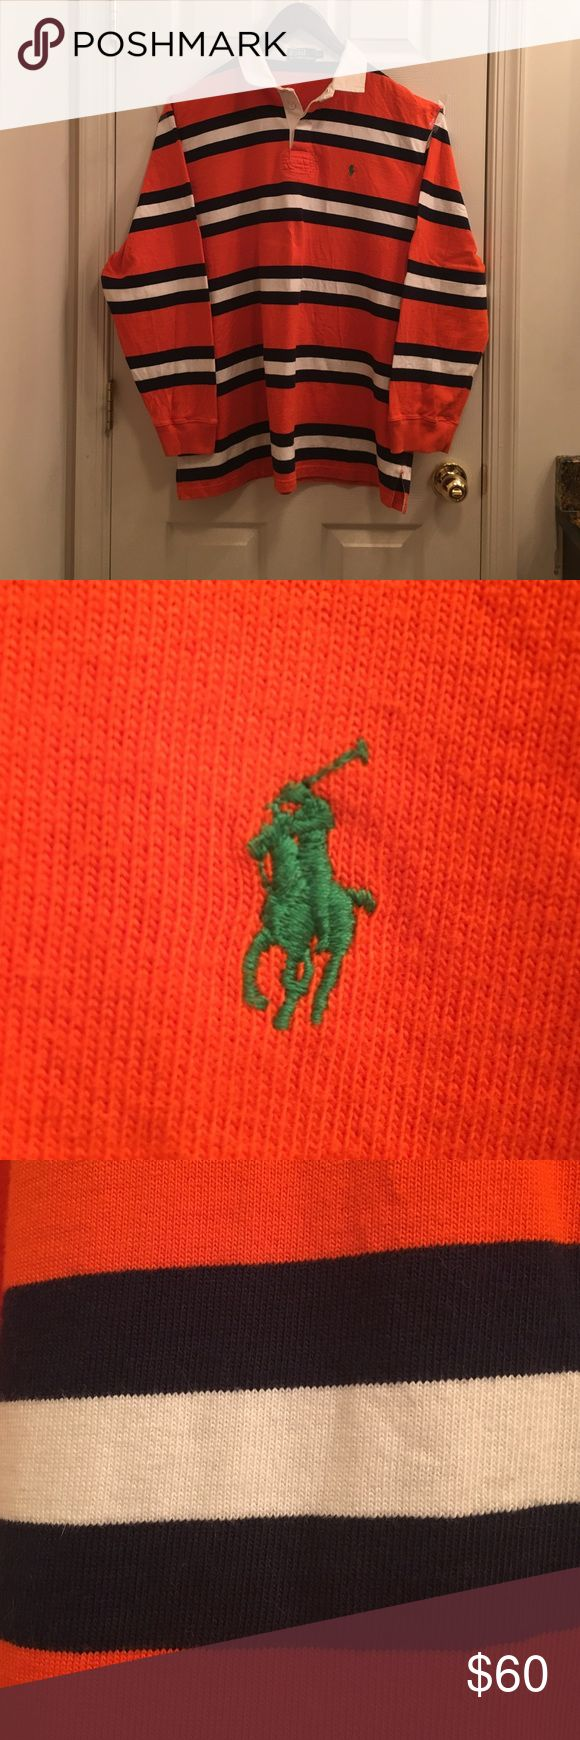 Polo Ralph Lauren Men's Long Sleeve Rugby Shirt Like new gently worn long sleeve polo shirt in bold orange, navy blue and white stripes with contrasting green polo pony logo.  A great classic stylish top when paired with jeans. Polo by Ralph Lauren Shirts Polos